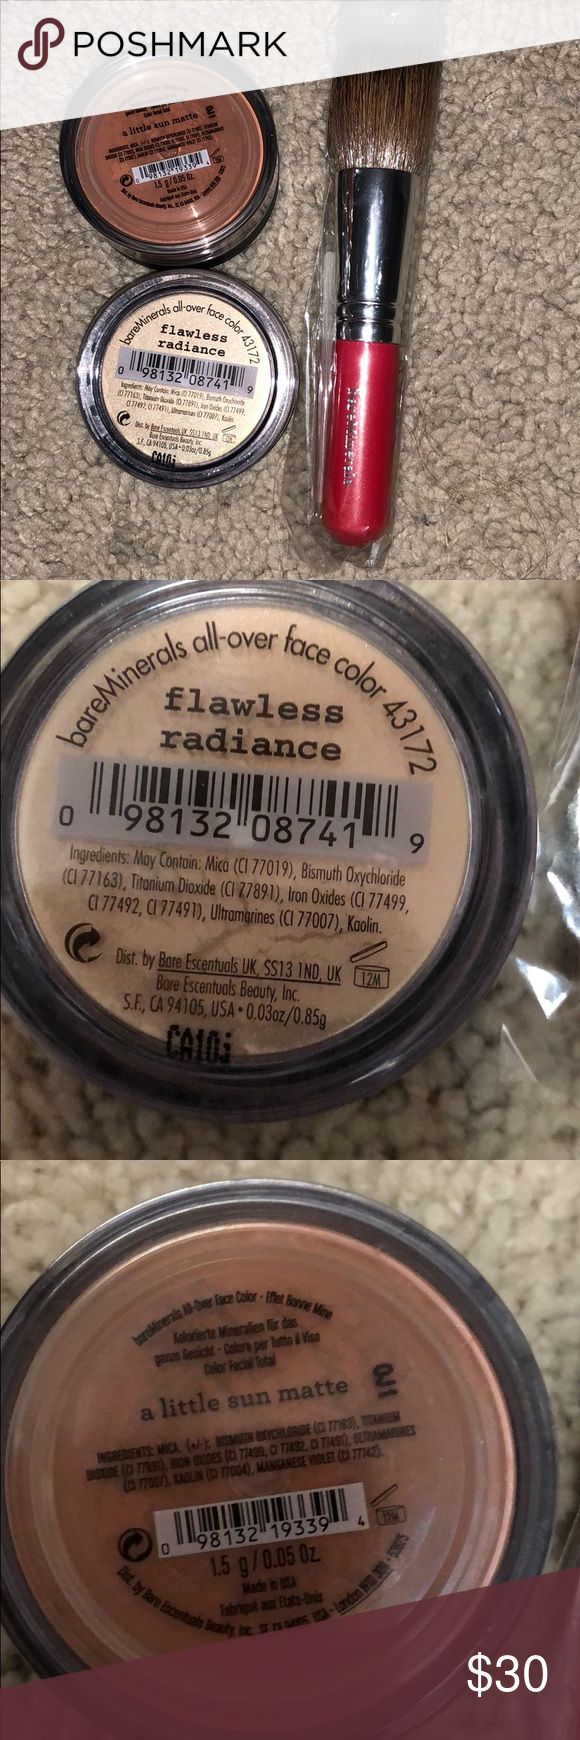 Bare minerals set of two with brush Bare minerals flawless radiance and a little sun matte with feather light brush with pink handle. Unopened bareMinerals Makeup Blush